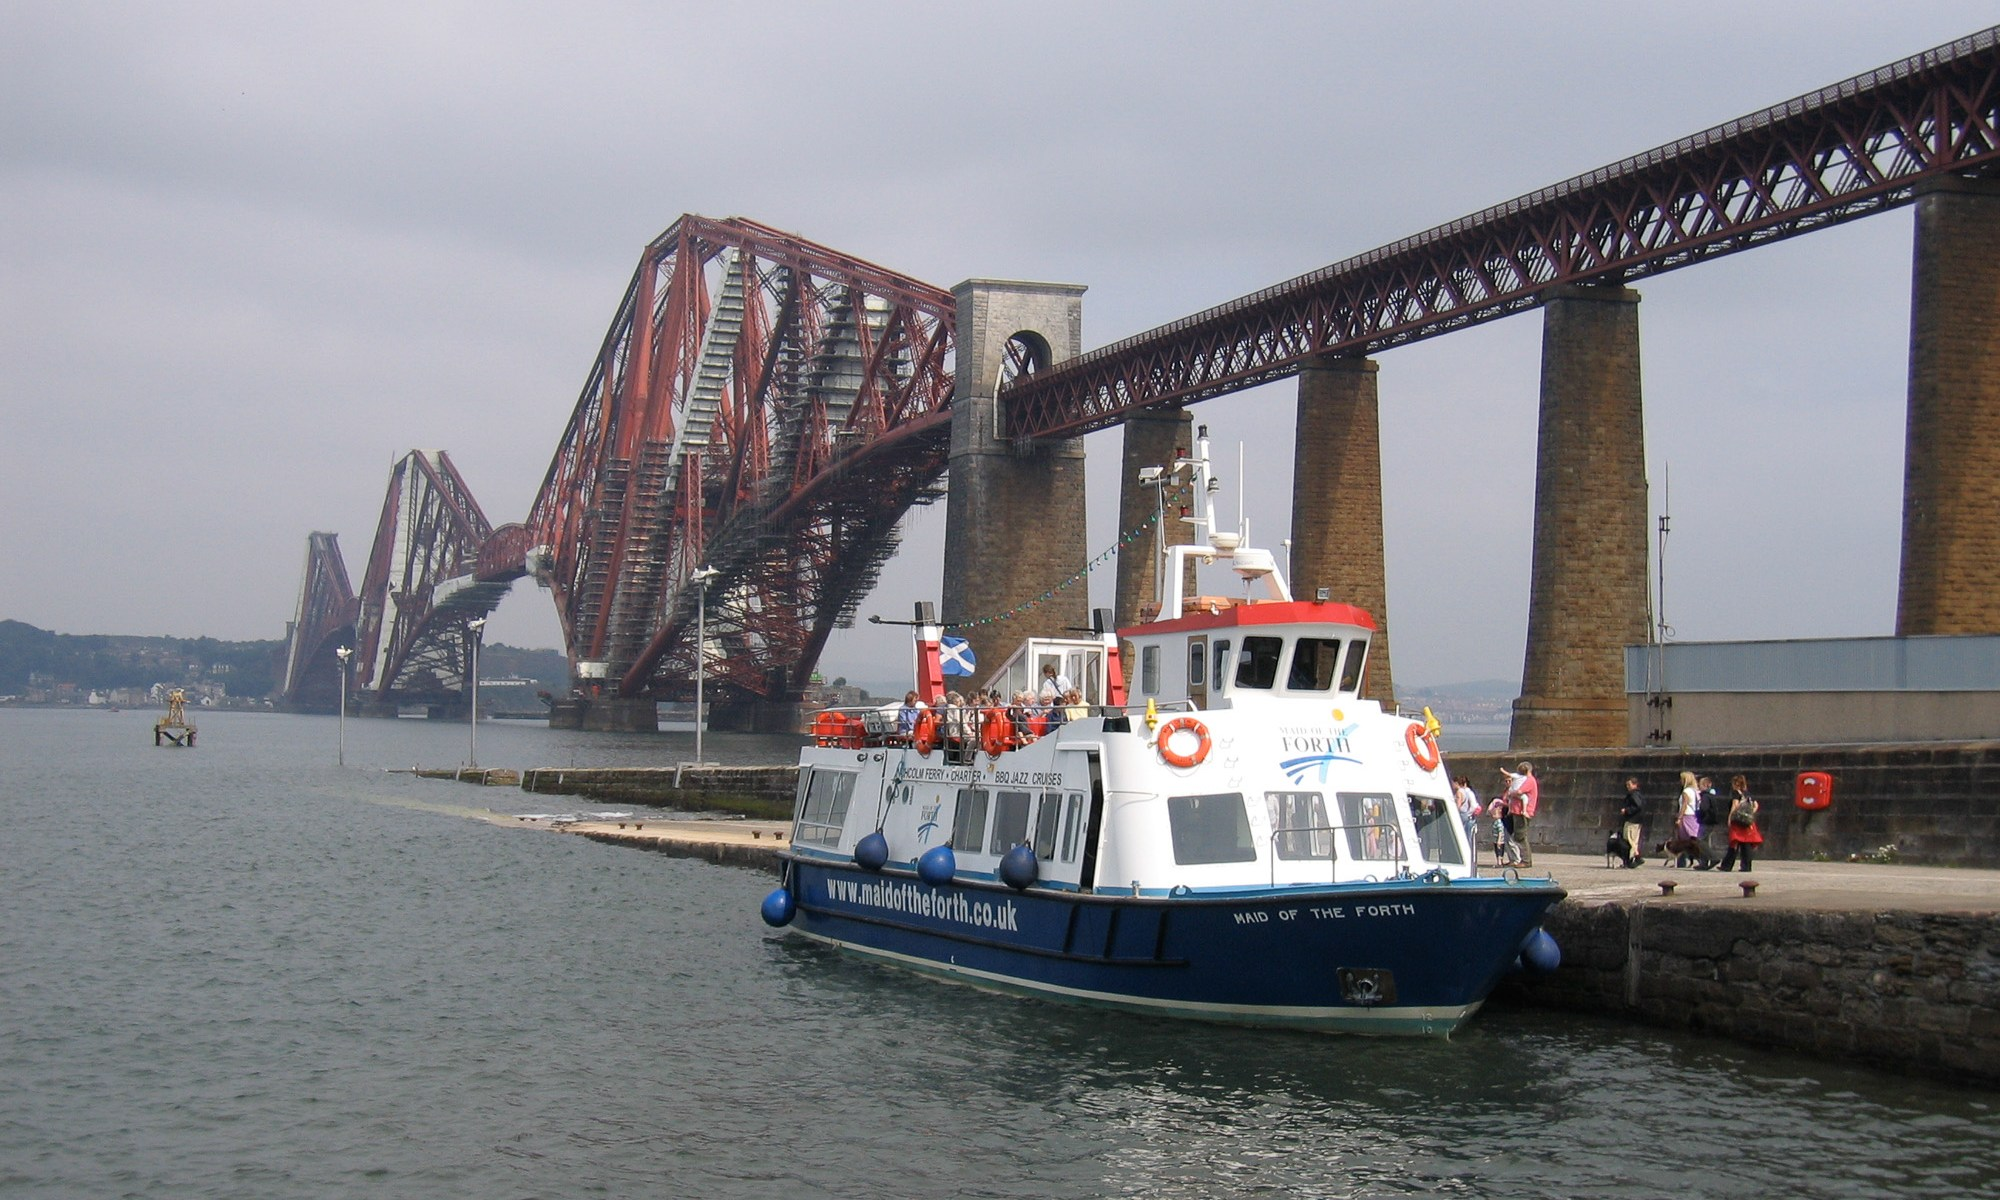 Boat trip on the Firth of Forth